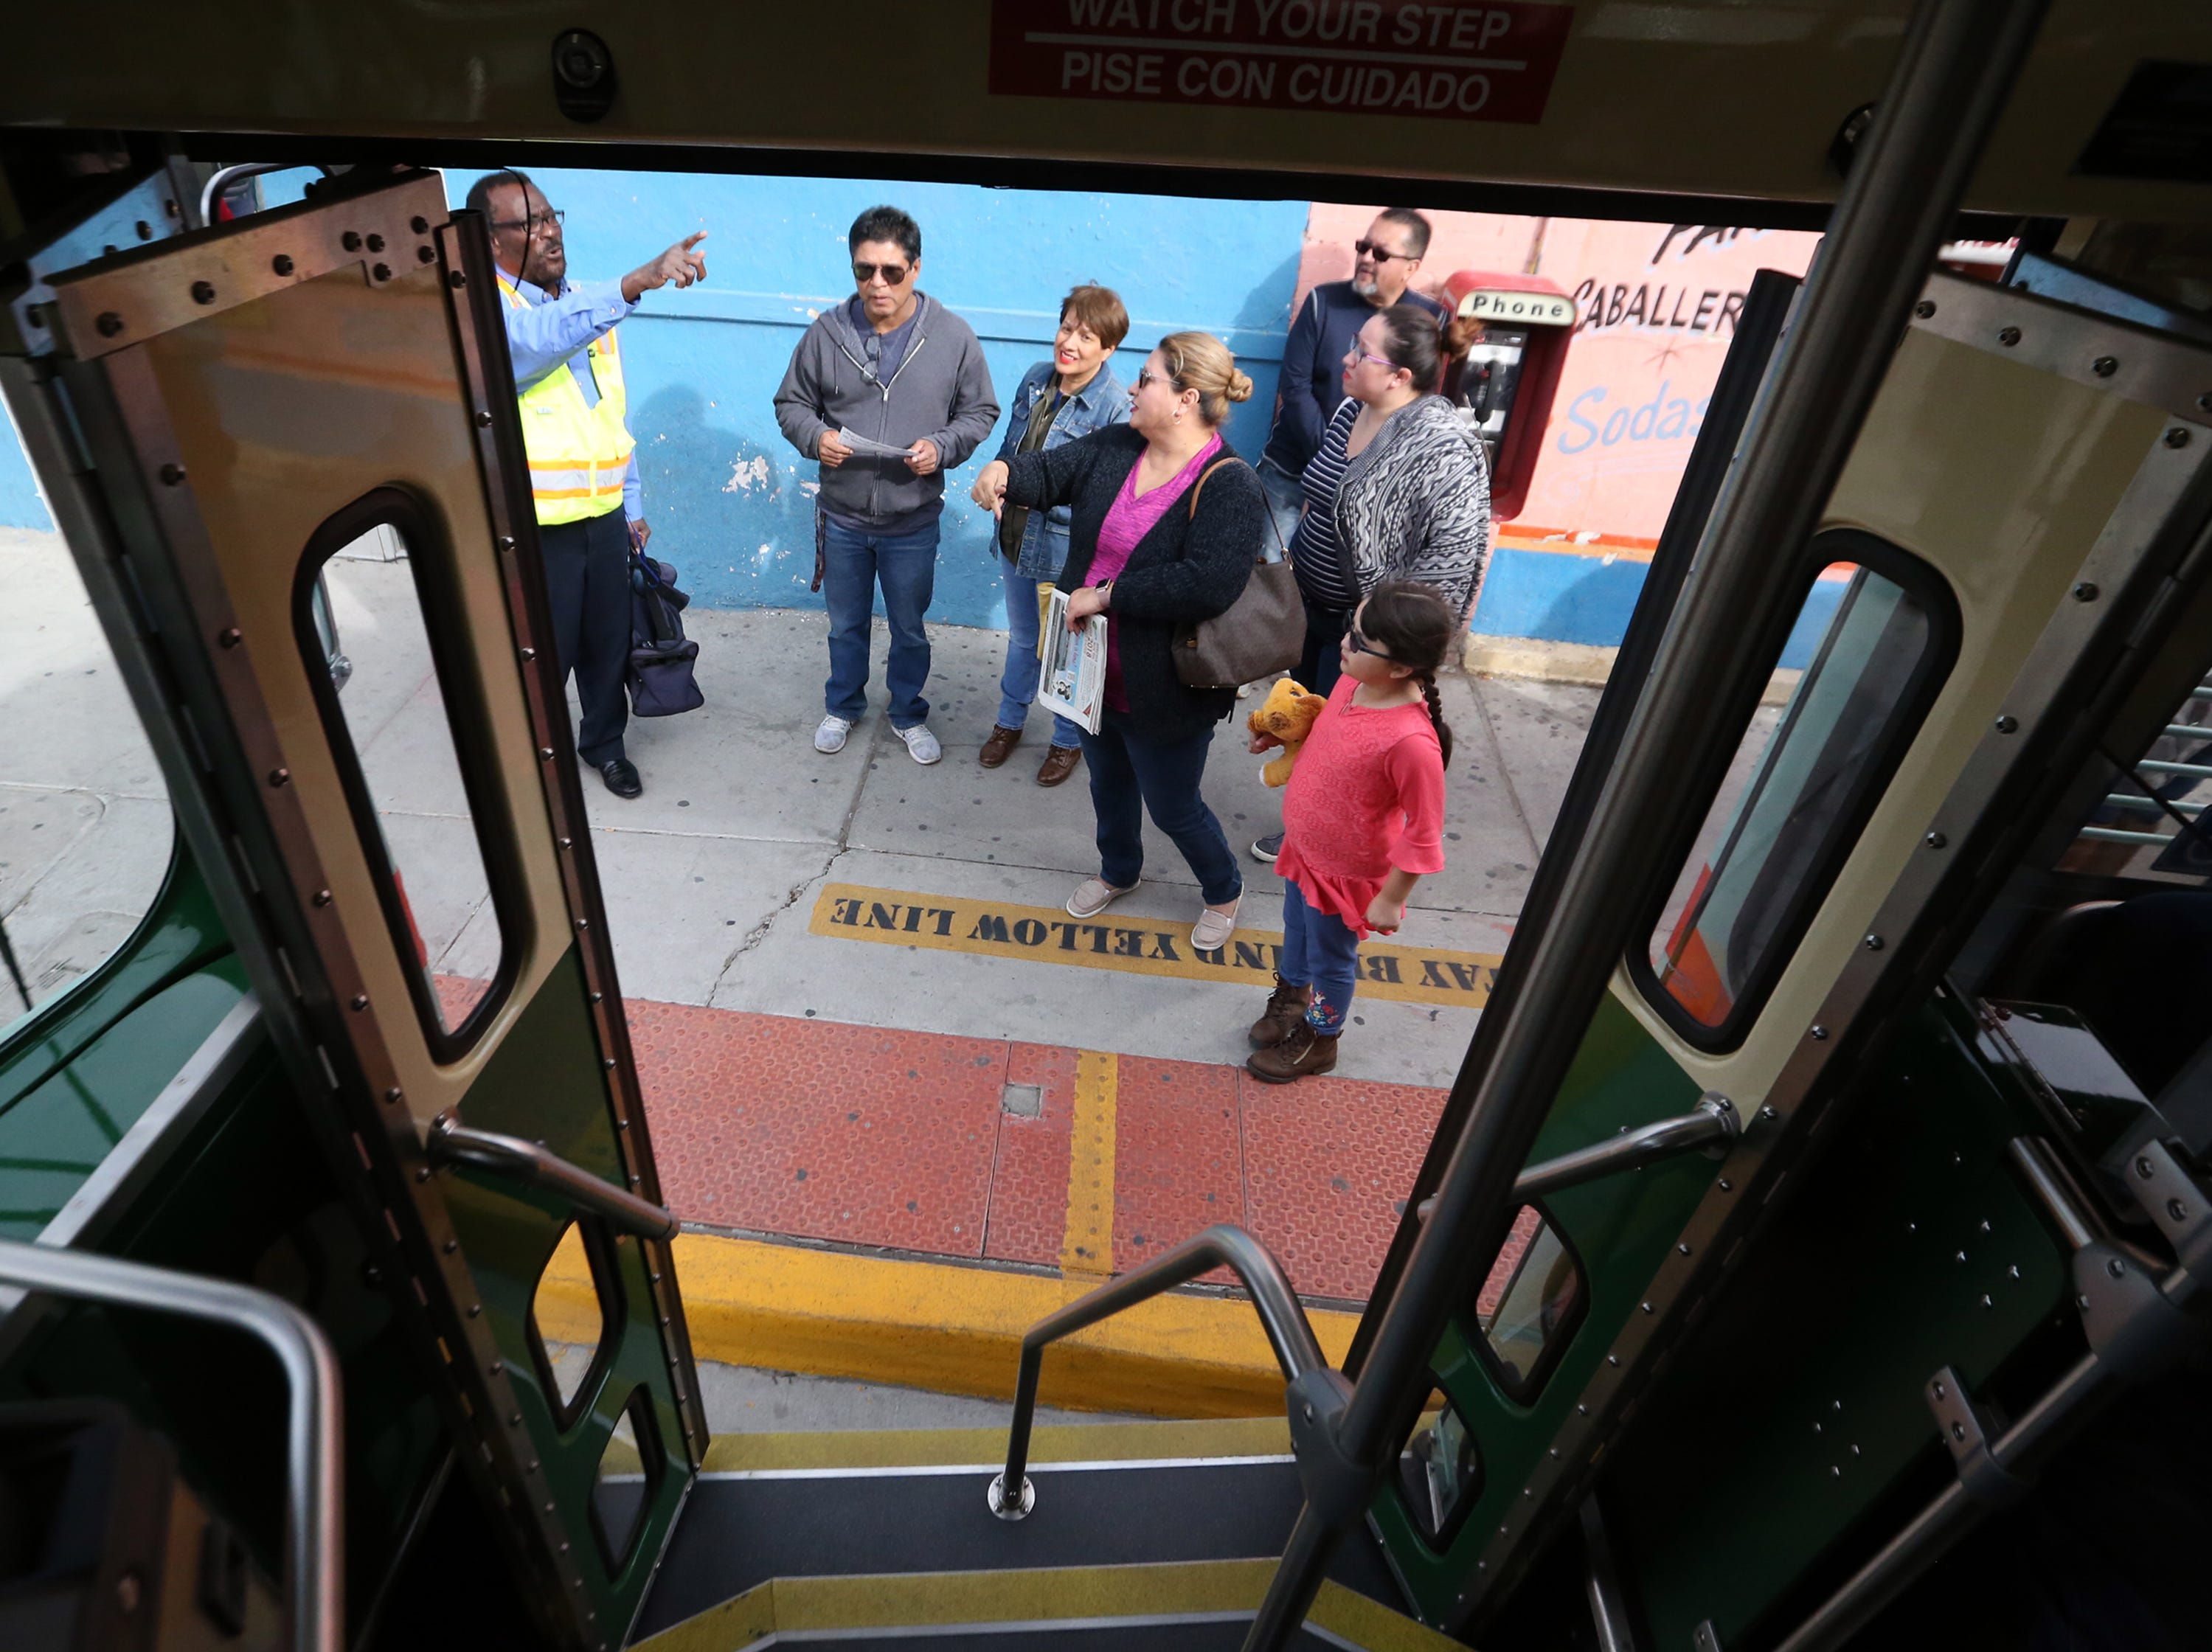 Light rail operator Victor Lawson, left, talks with passengers wishing to board Streetcar 1506 along Santa Fe Street in South El Paso Friday.